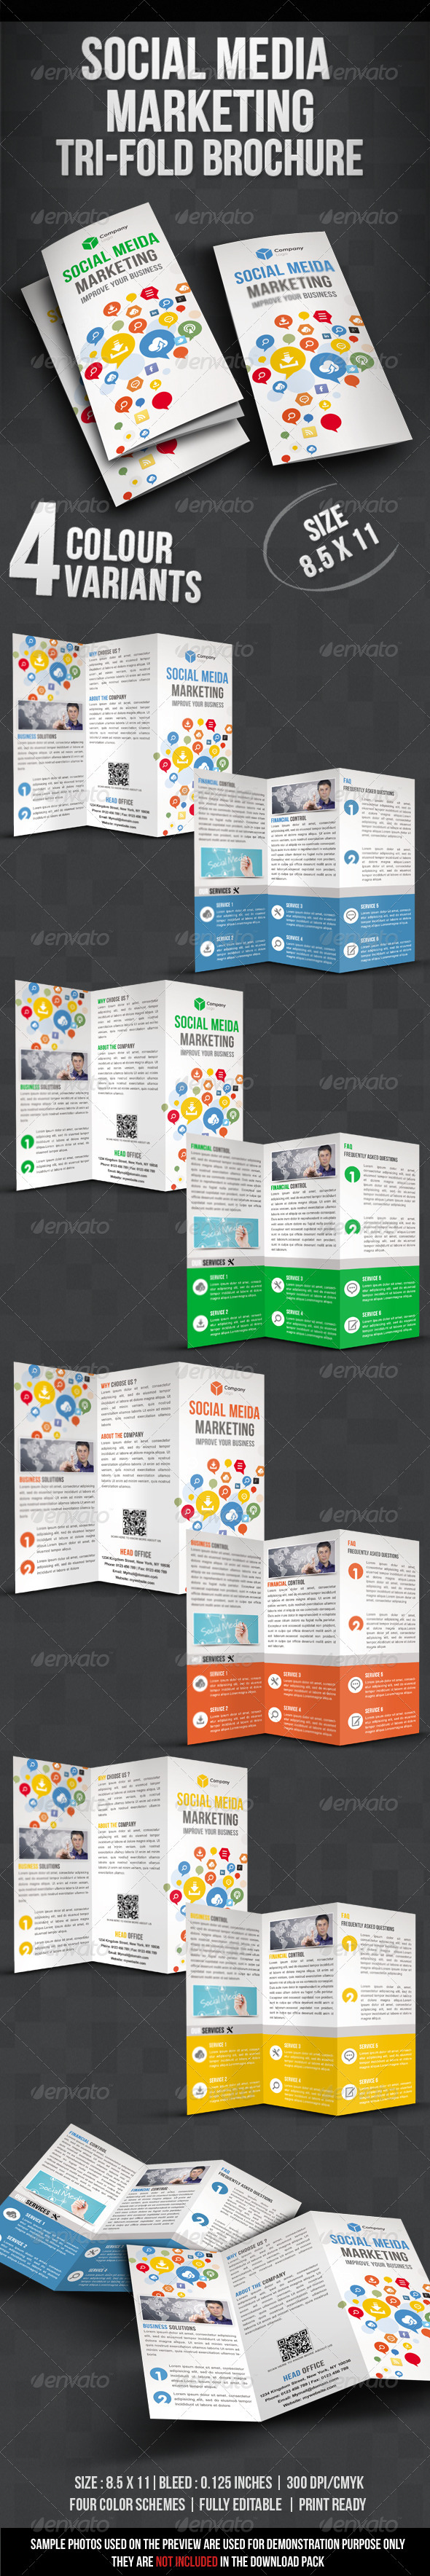 GraphicRiver Social Media Marketing Tri fold Brochure 3802560